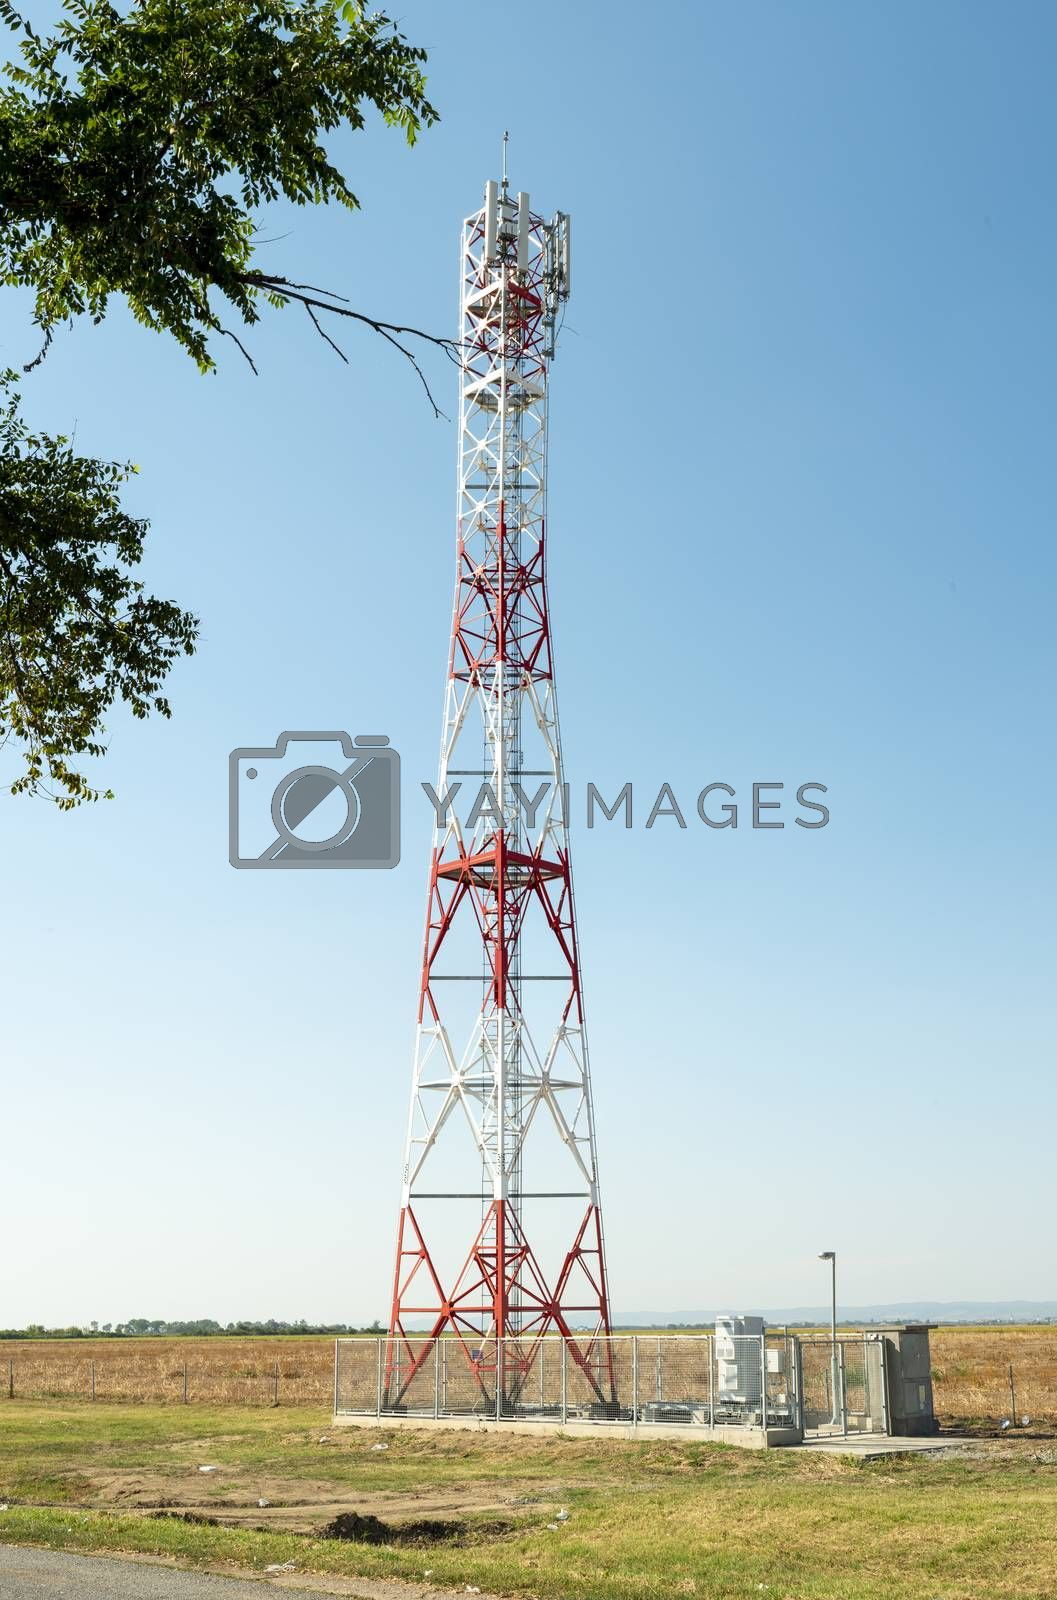 5G antenna for high speed internet distribution. 5G repeaters outside the city. Bright colours red and white.